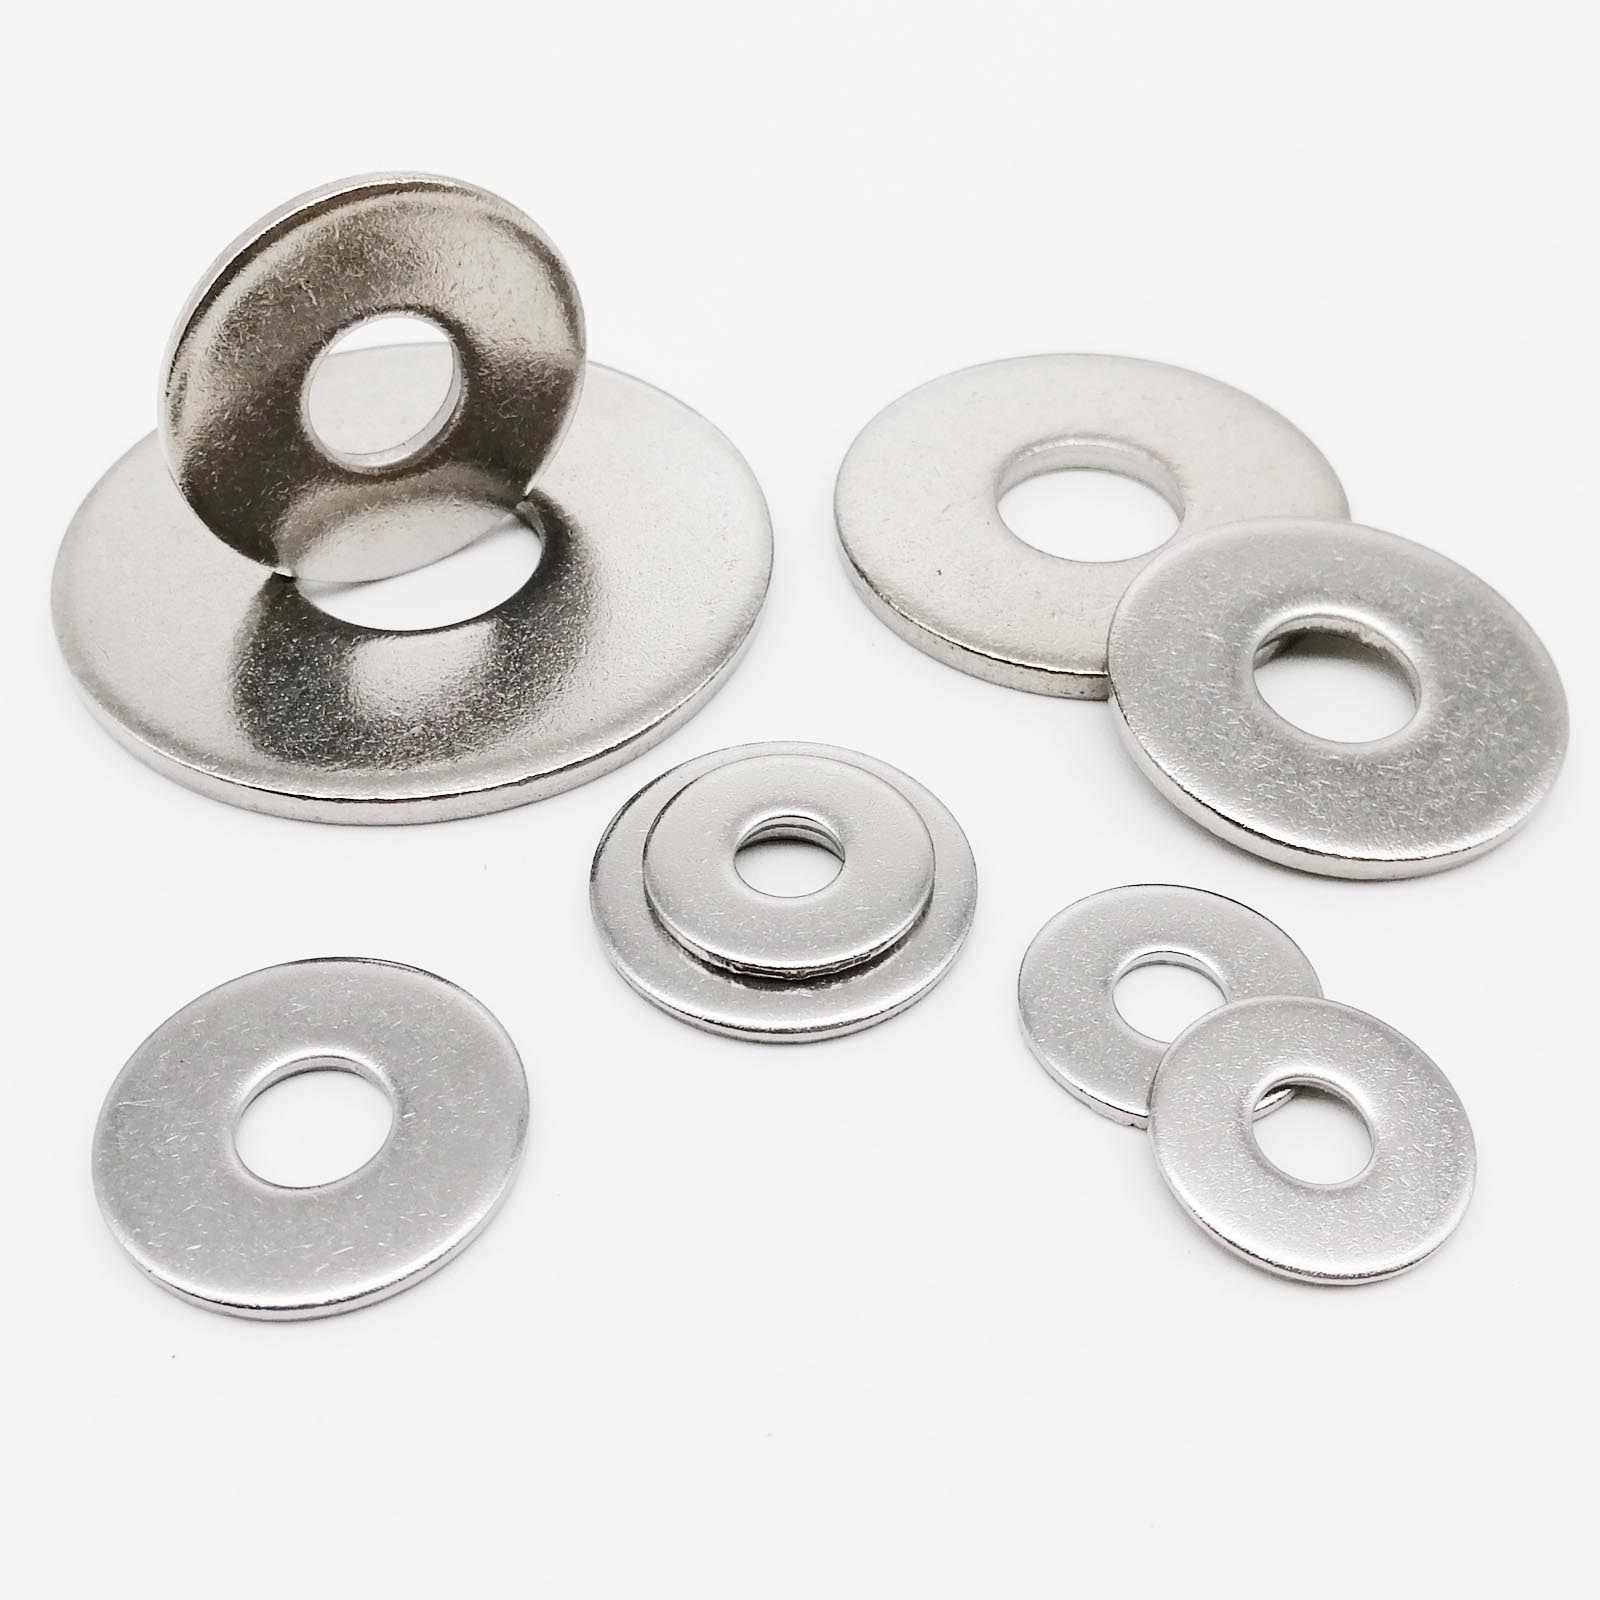 Flat Washers A2 Stainless Steel Washer M3 M4 M5 M6 M8 M10 M12 M14 M16 M18 M20